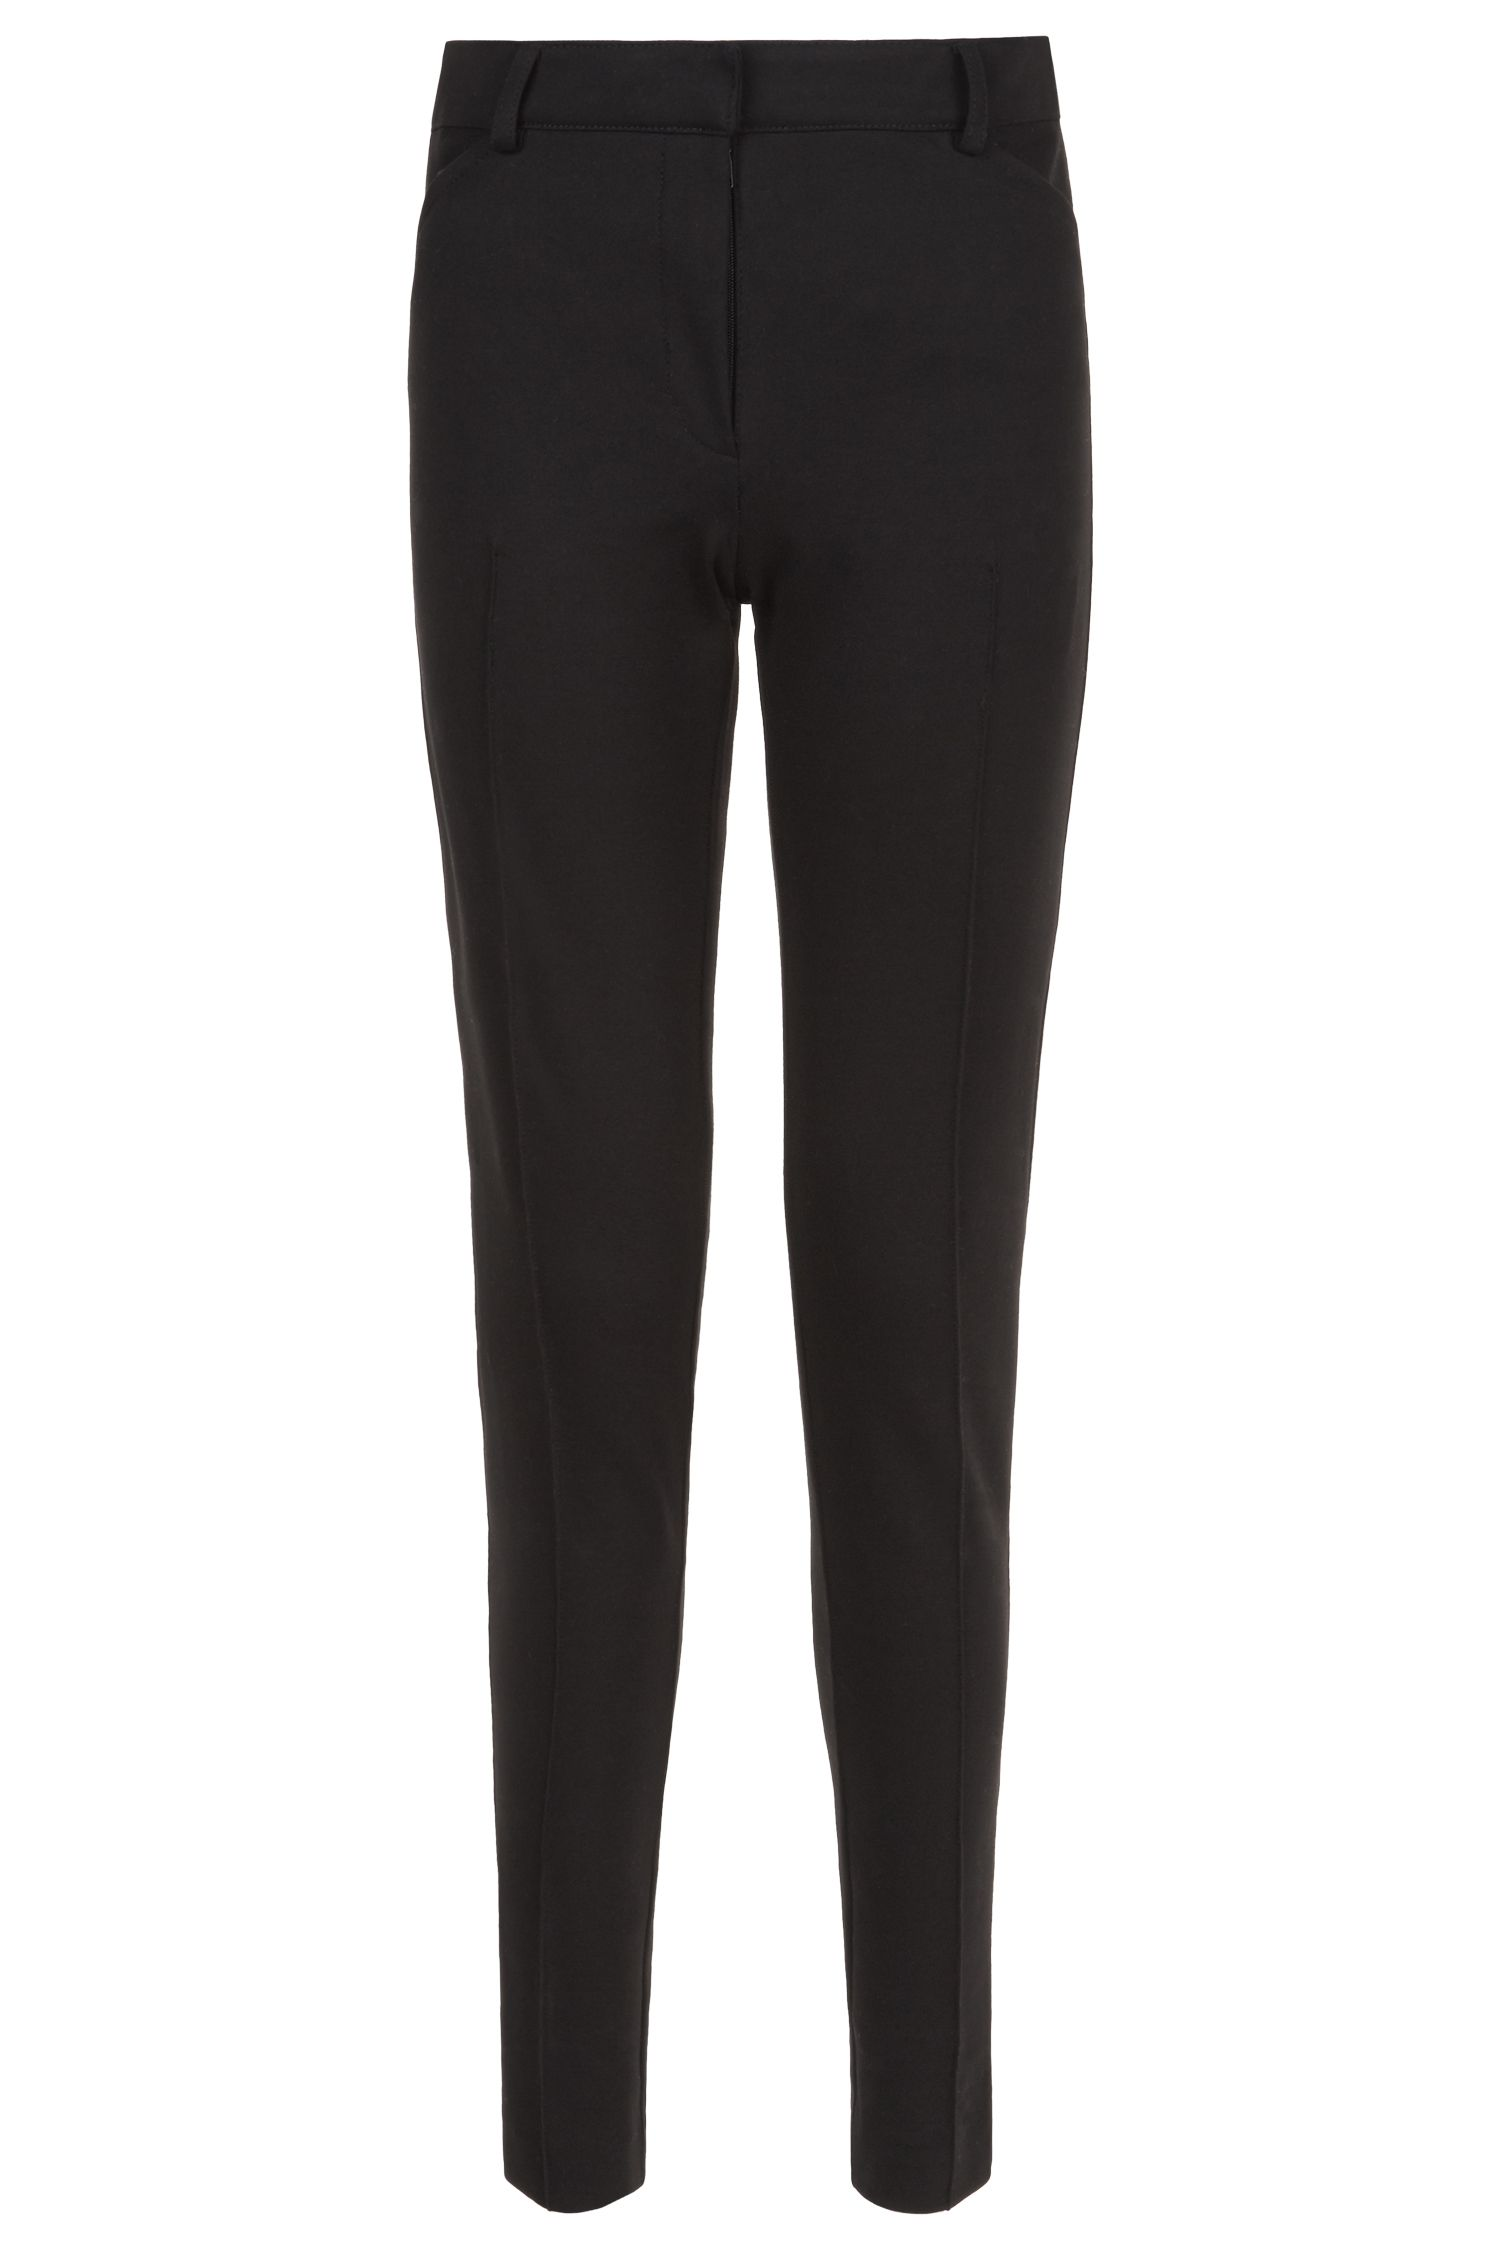 Fenn Wright Manson Juno Trouser, Black